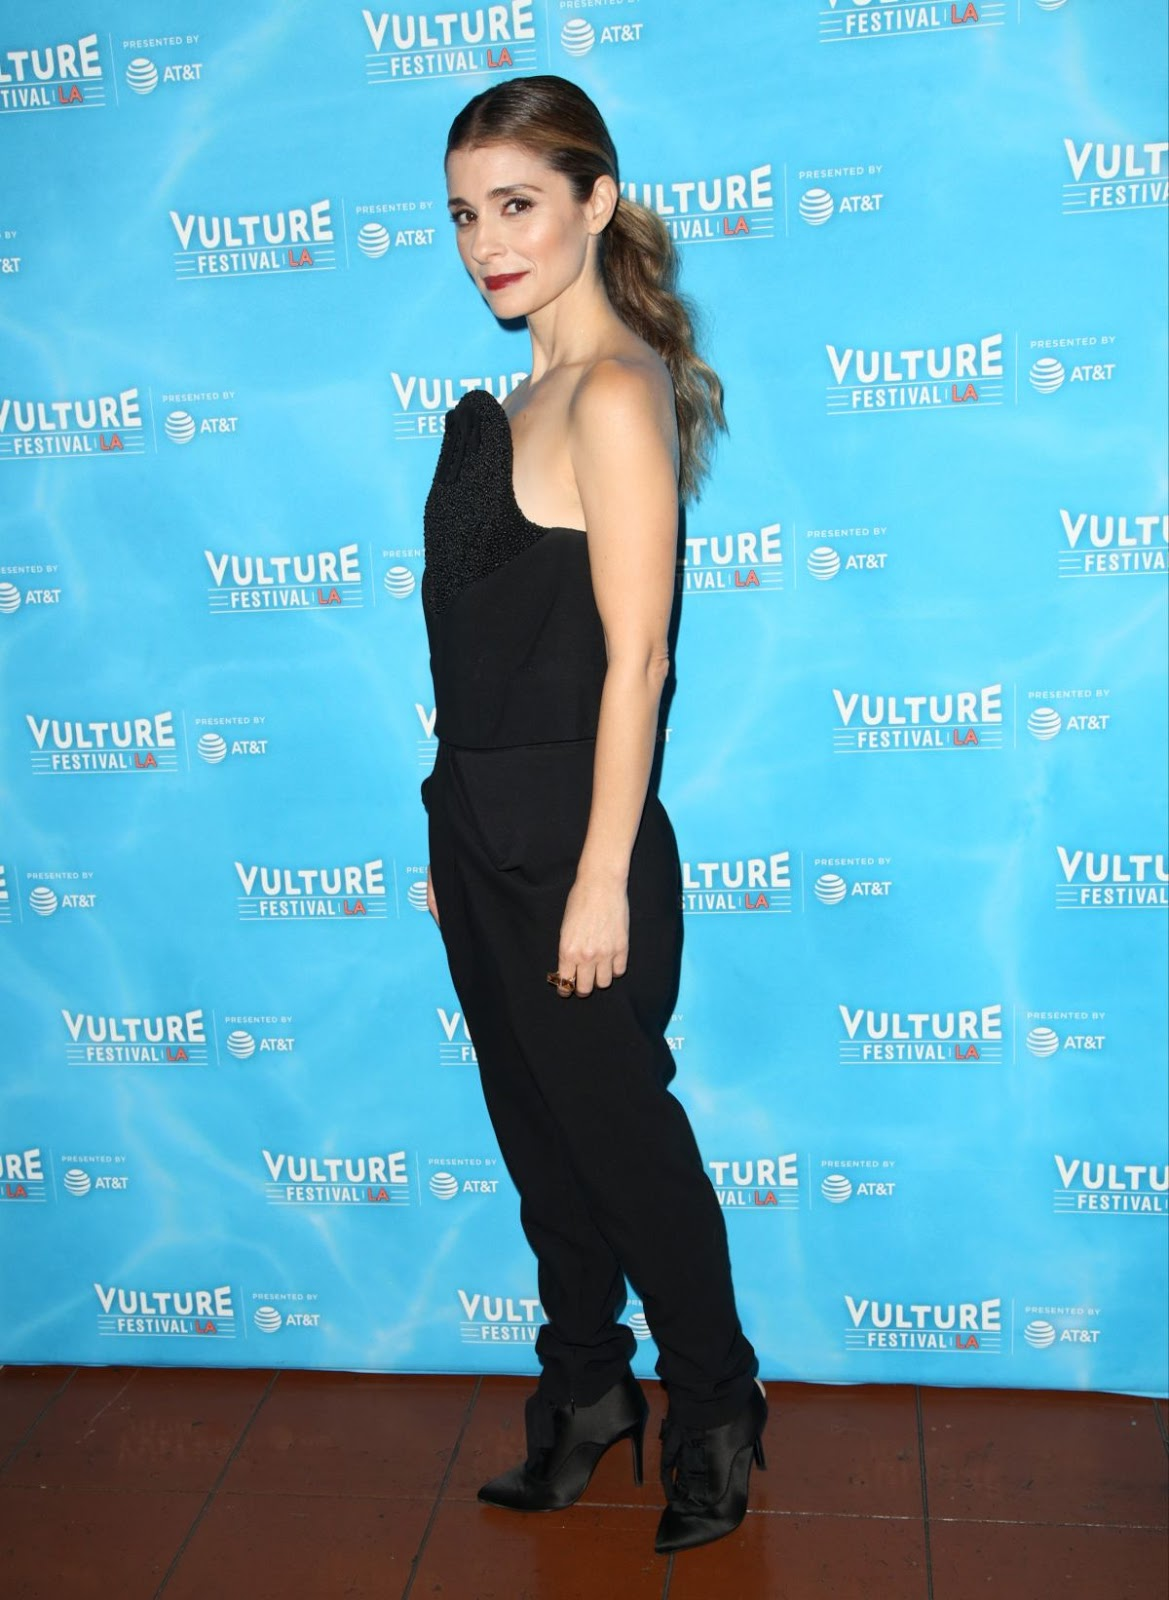 Shiri Appleby looking hot in black dress at Unreal vs Superstore Vulture Festival Event in Los Angeles